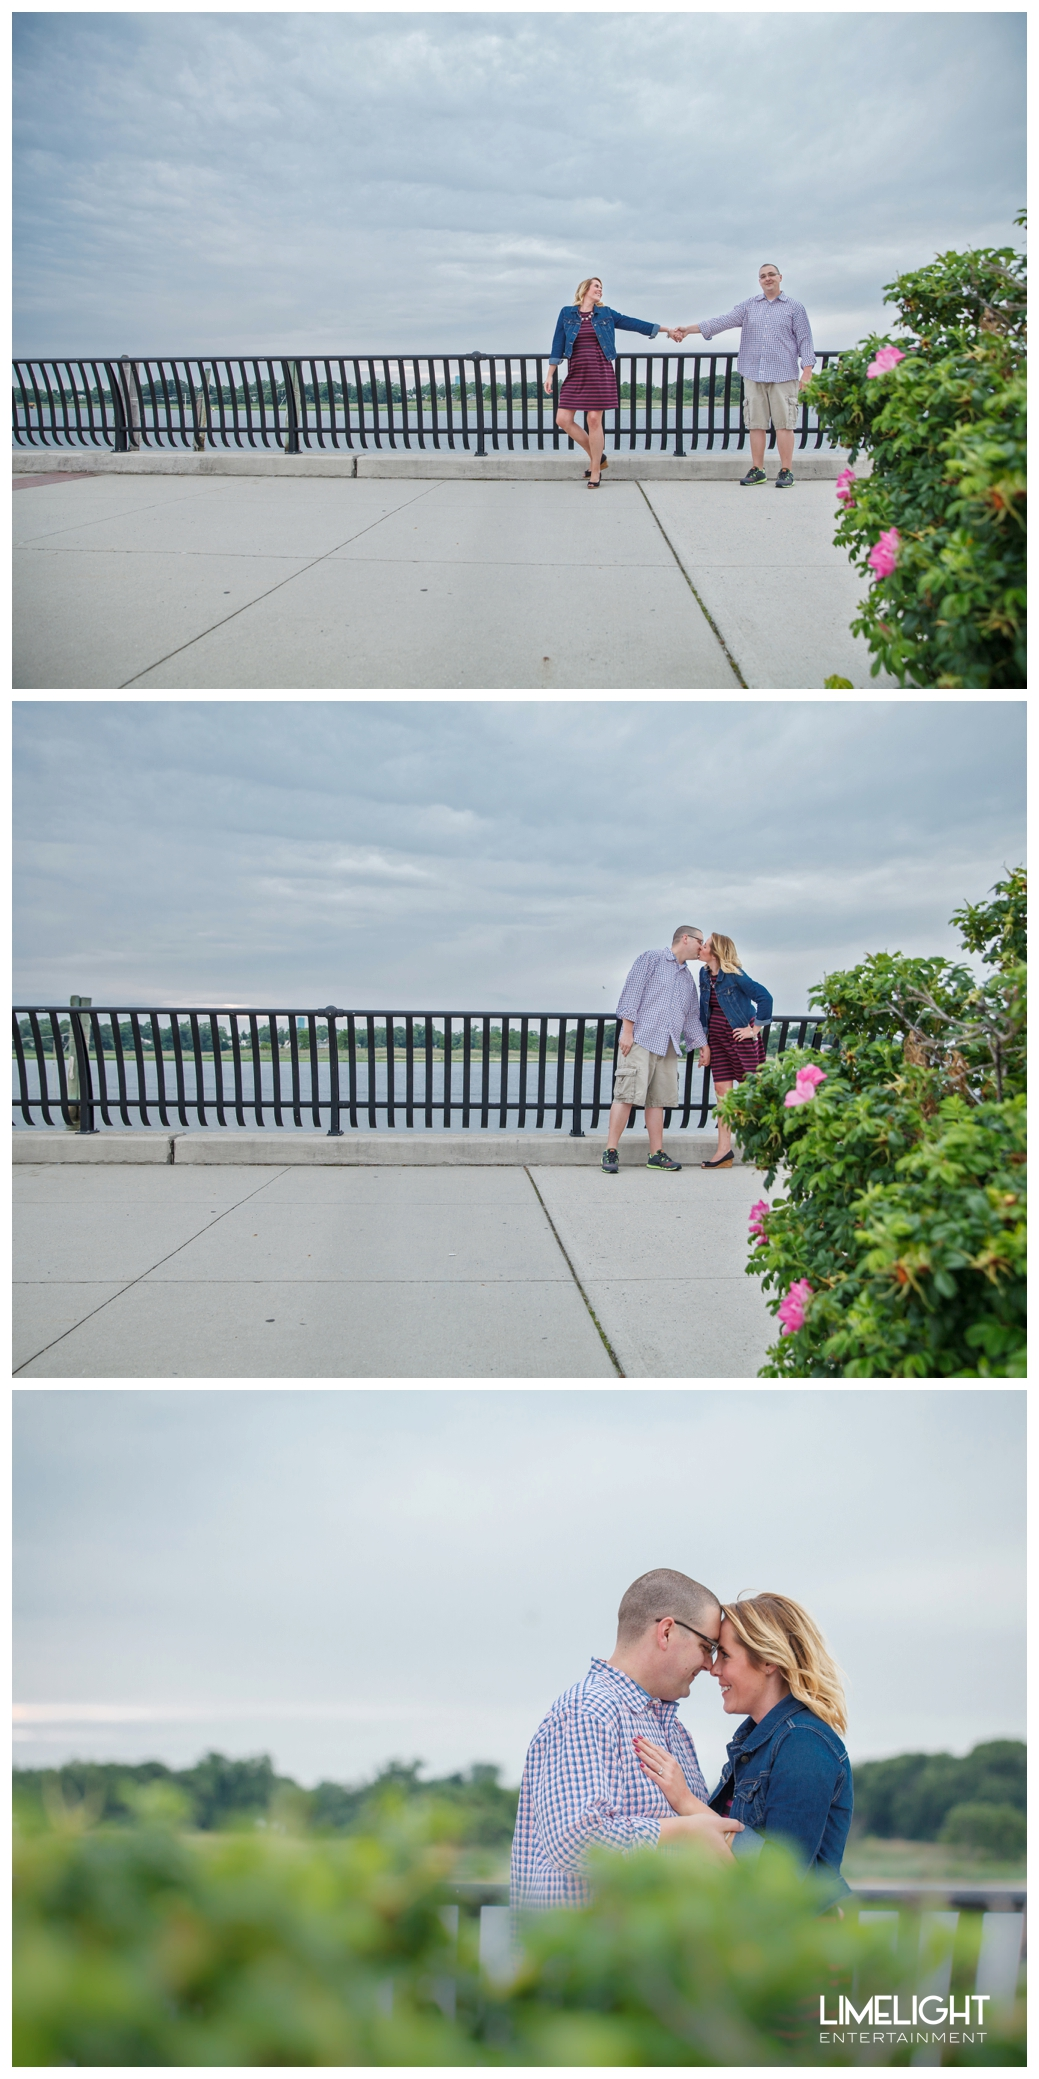 Megan + Mike's Engagement Session at the Keyport Waterfront